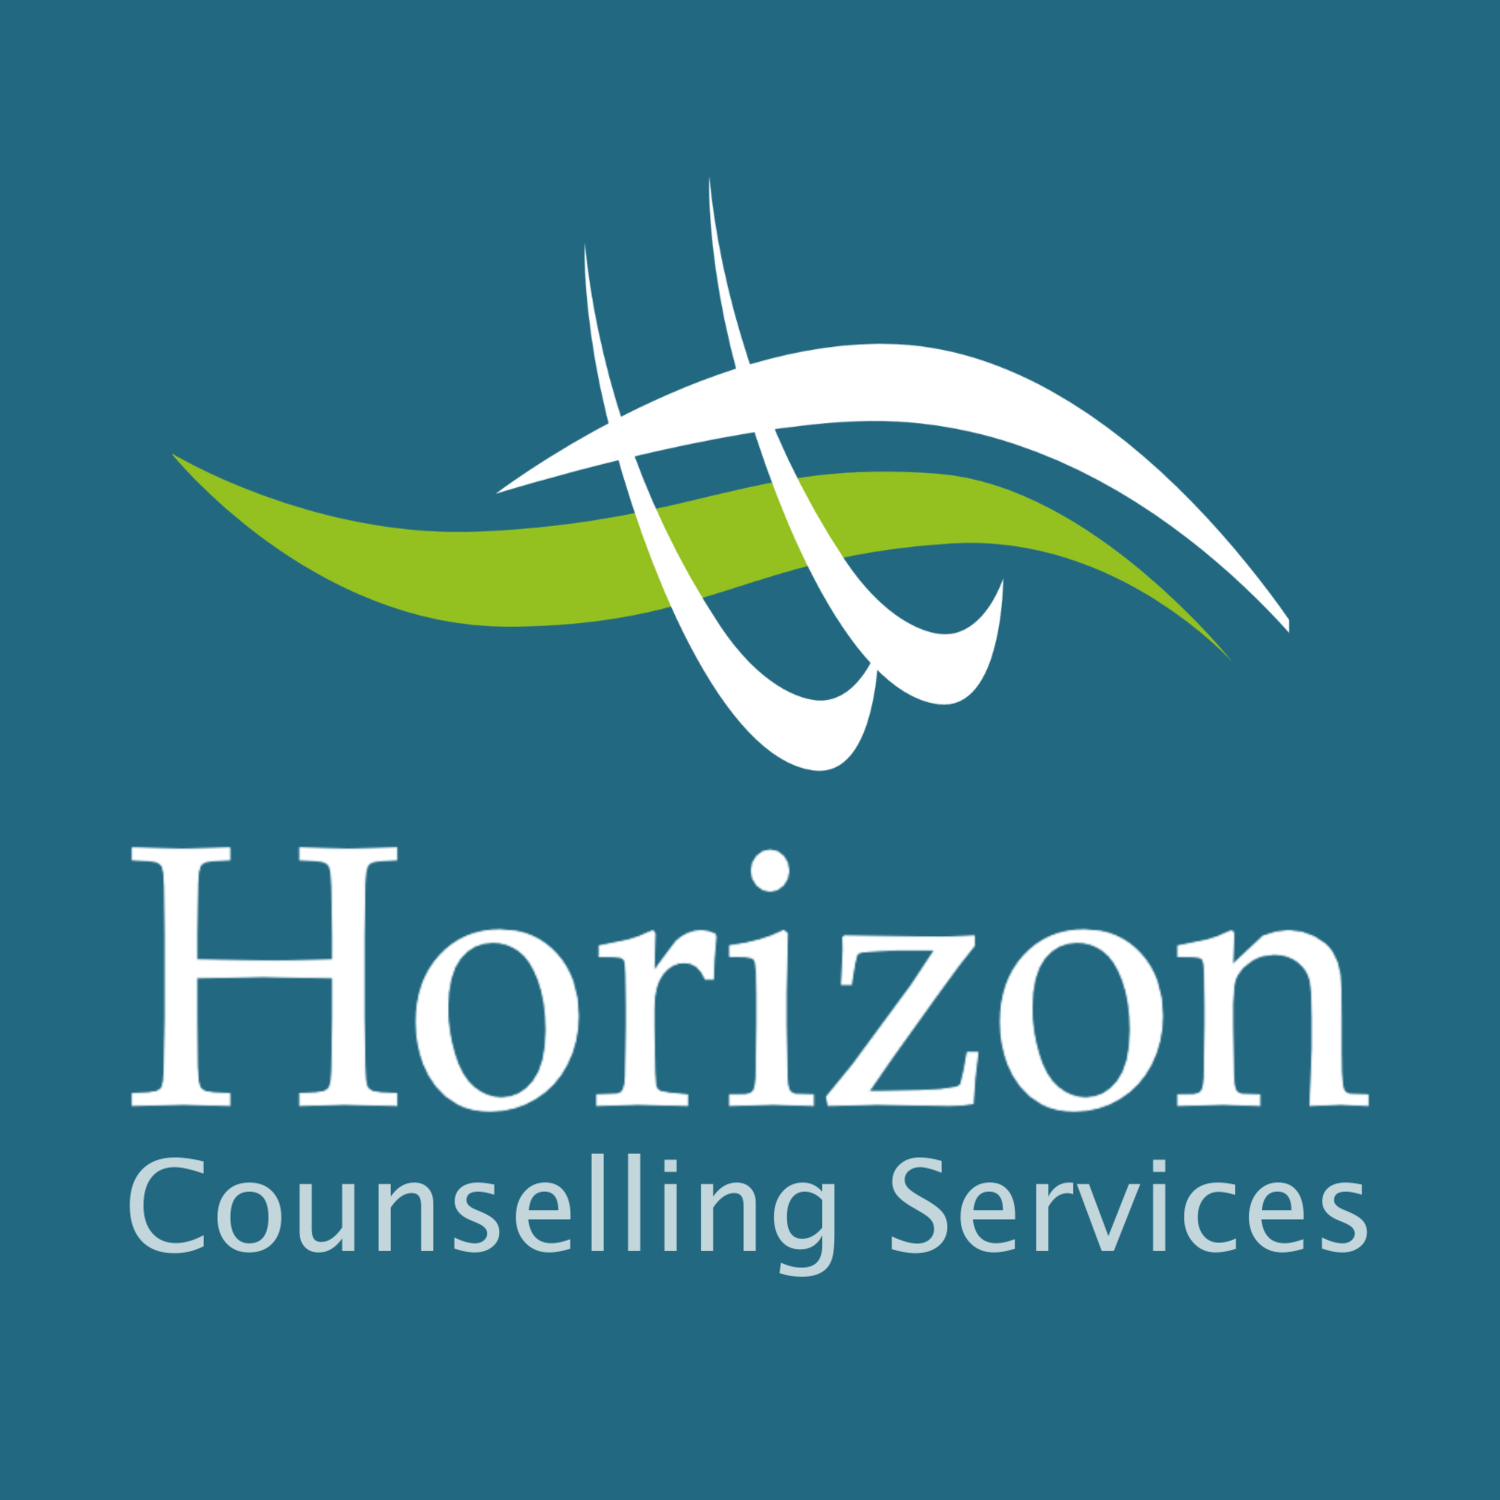 Horizon Counselling Services